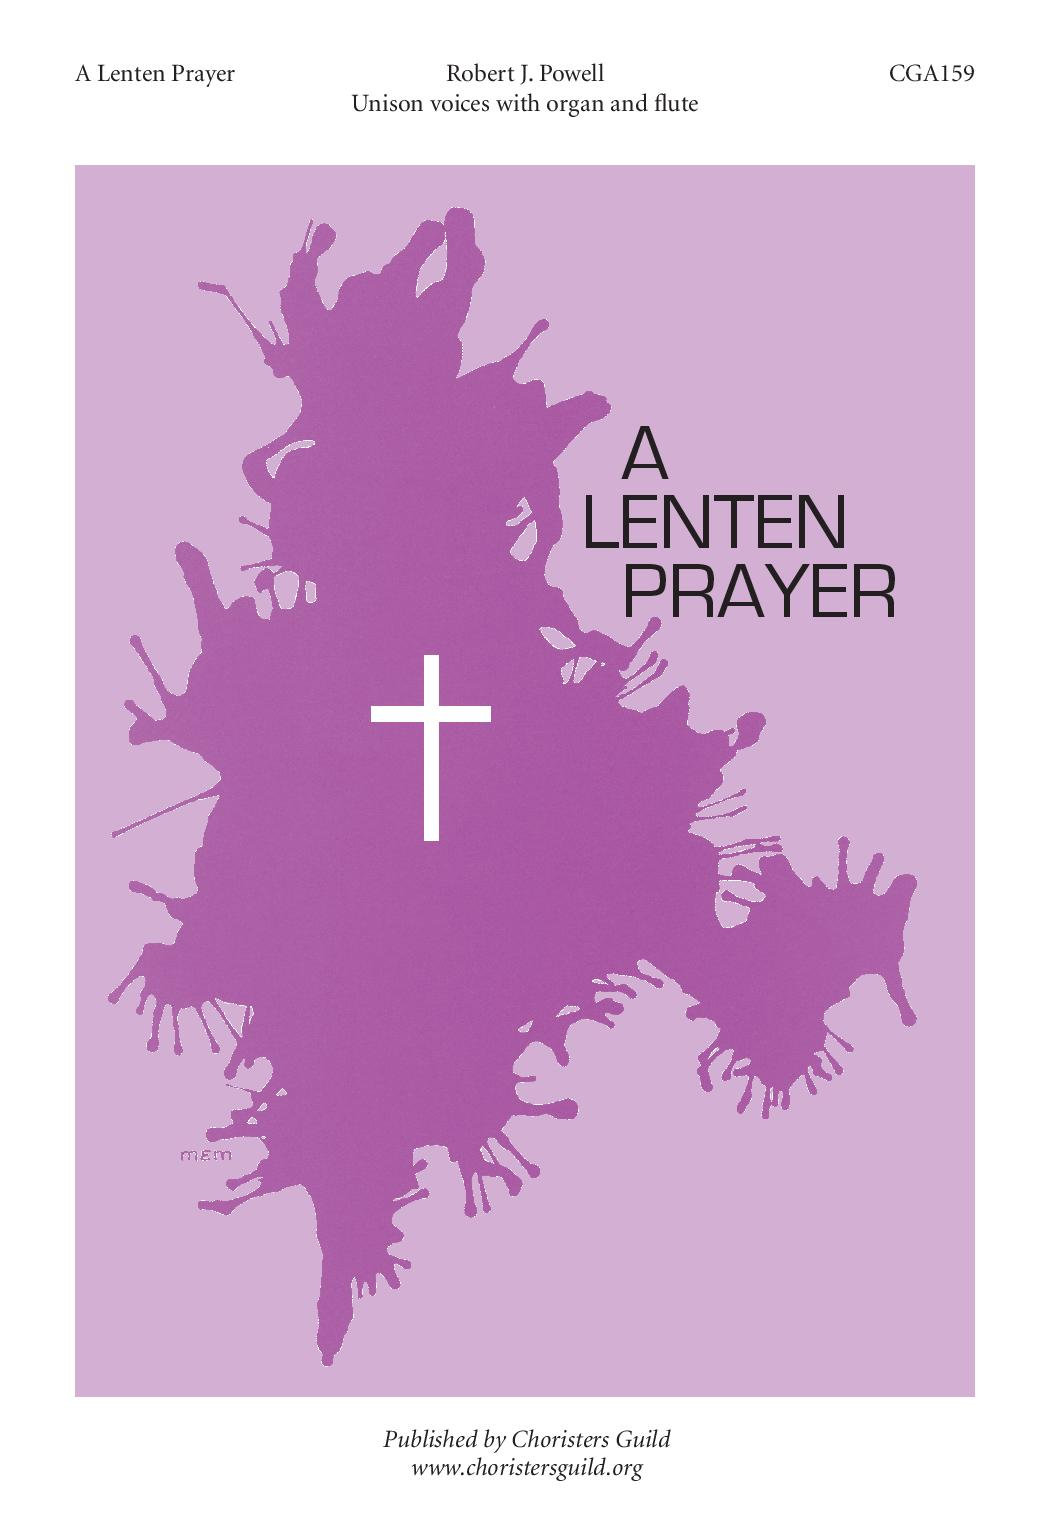 A Lenten Prayer